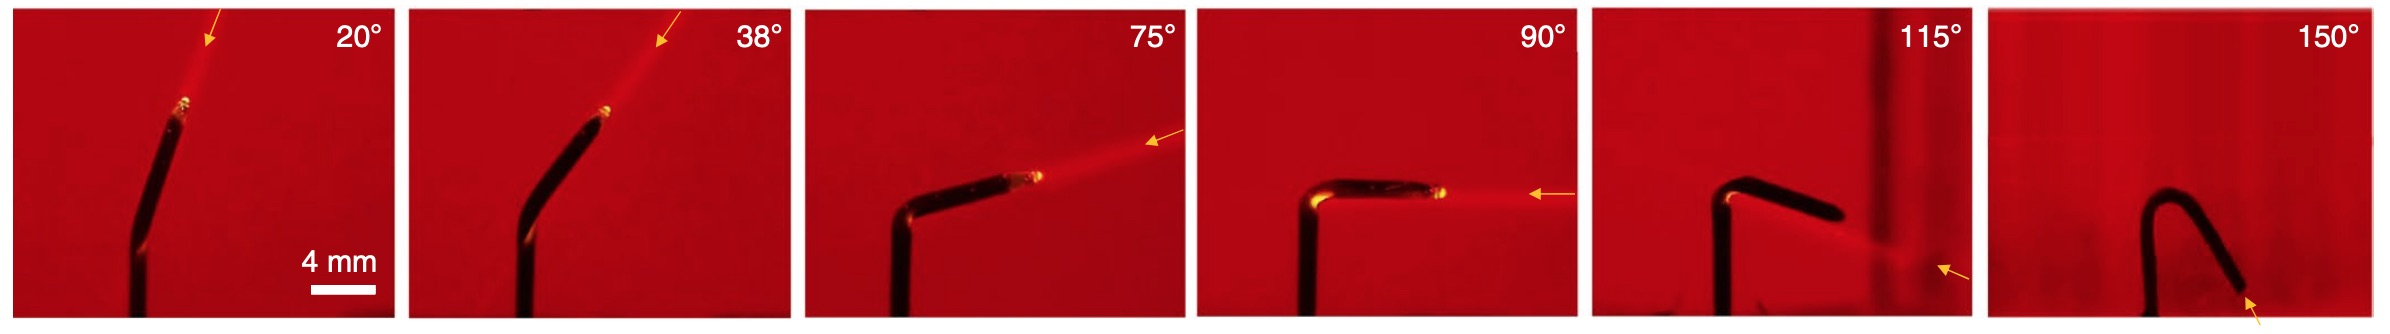 Photos of an AuNP–PNIPAAm SunBOT in water aiming at a laser that illuminates from various zenith angles in the range 20–150°.